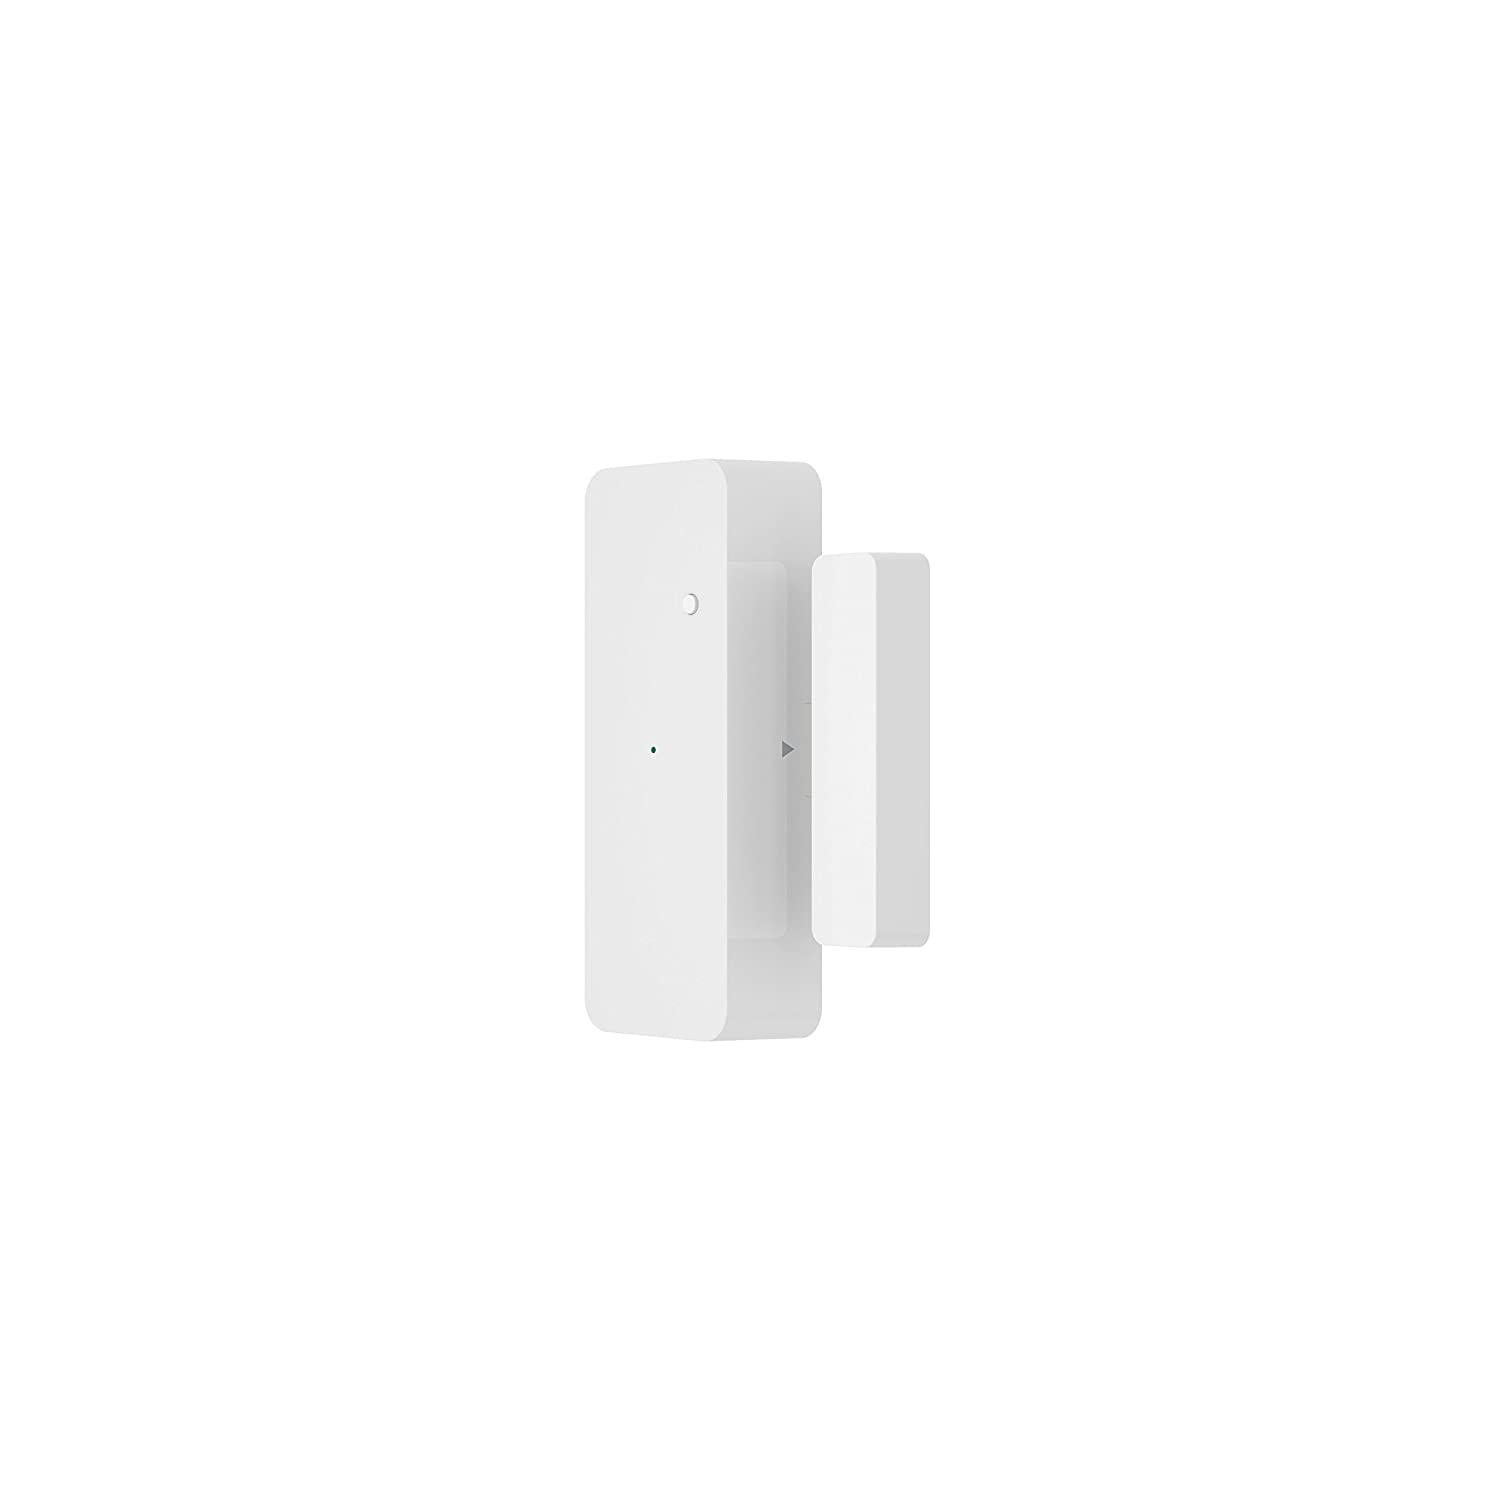 Insteon 2843-222 NST2843222 Door/window Sensor White